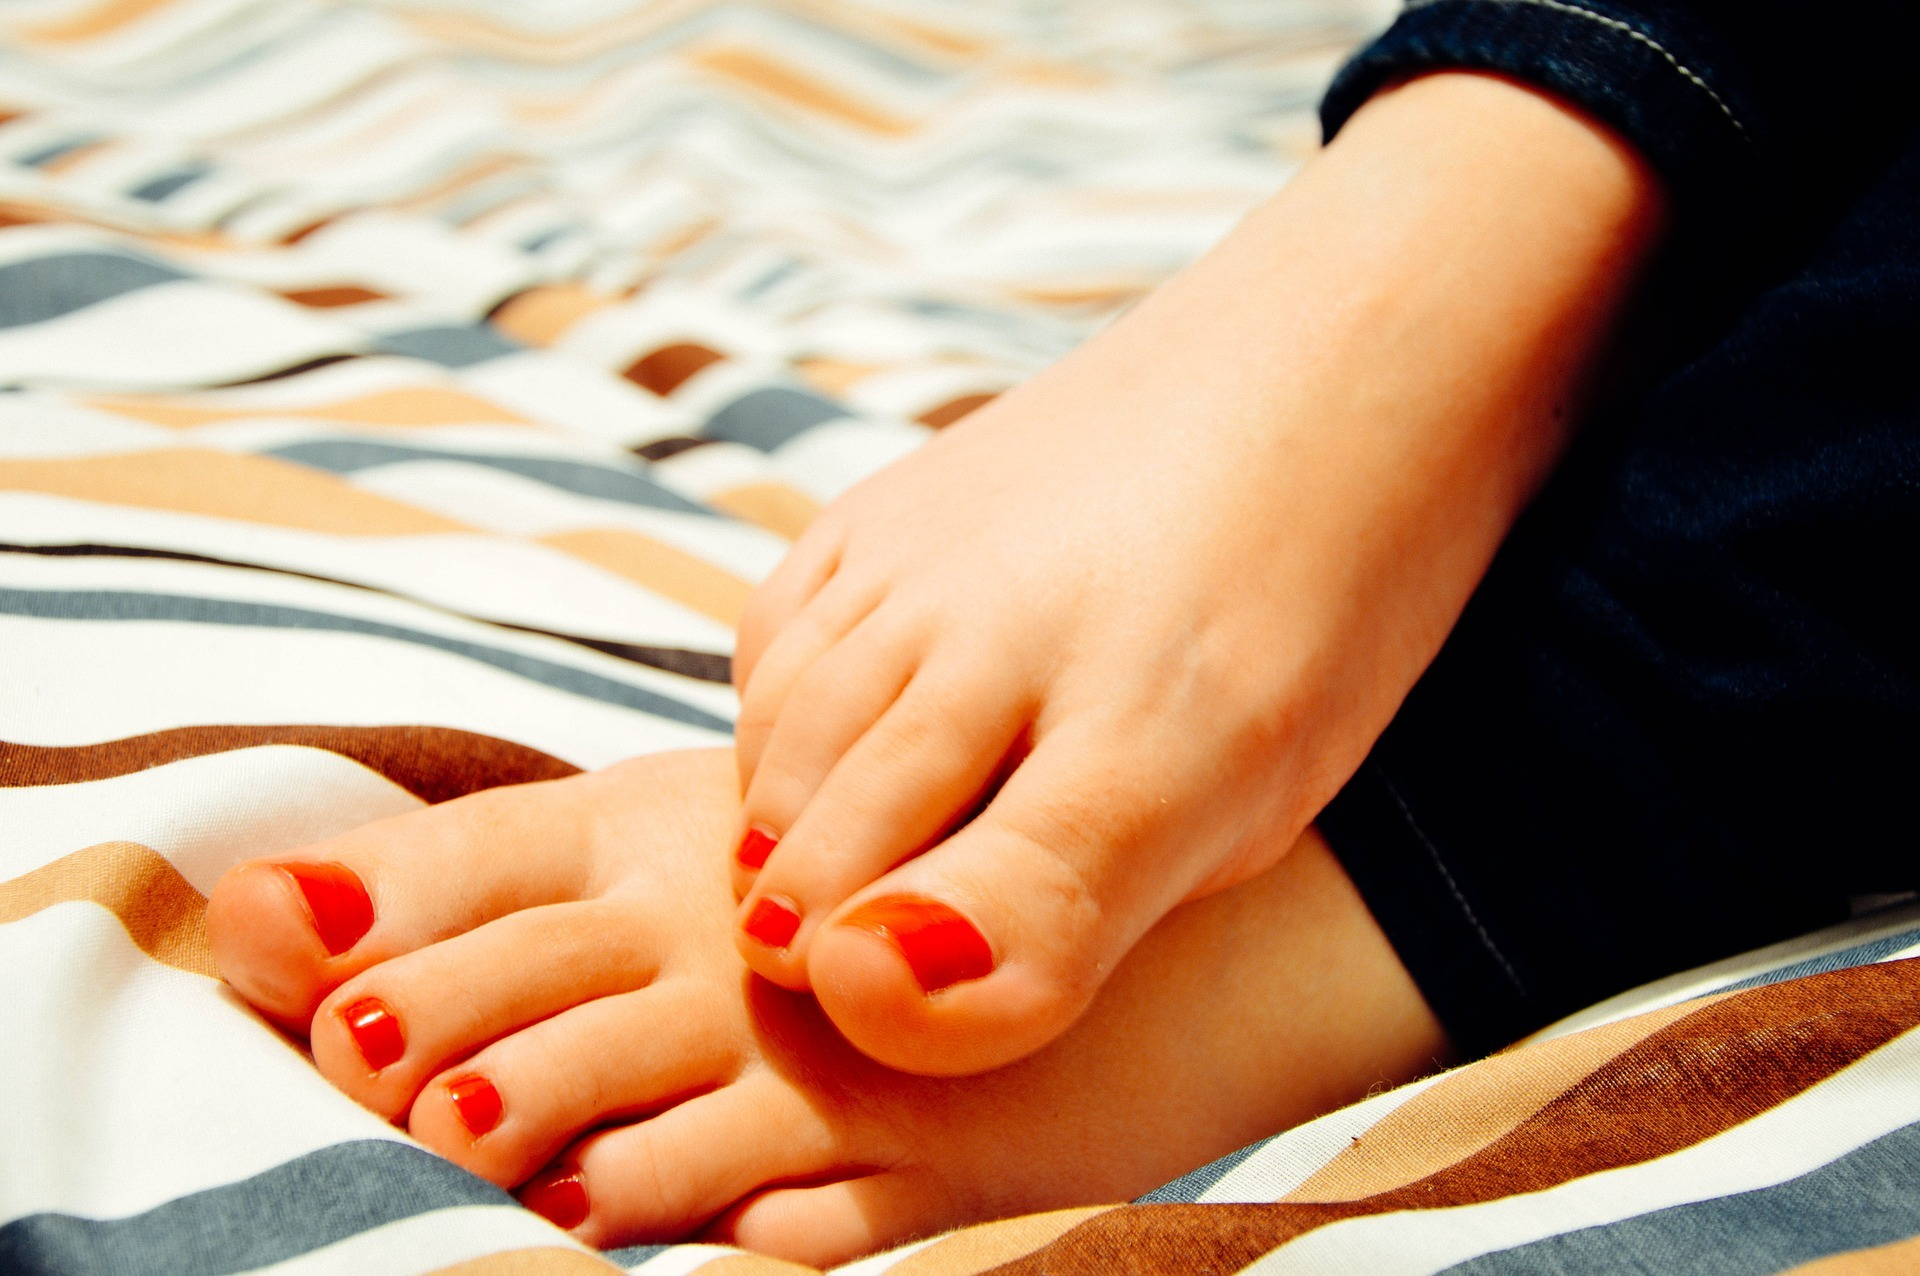 Tips for Soft Feet - By Megan Kelly